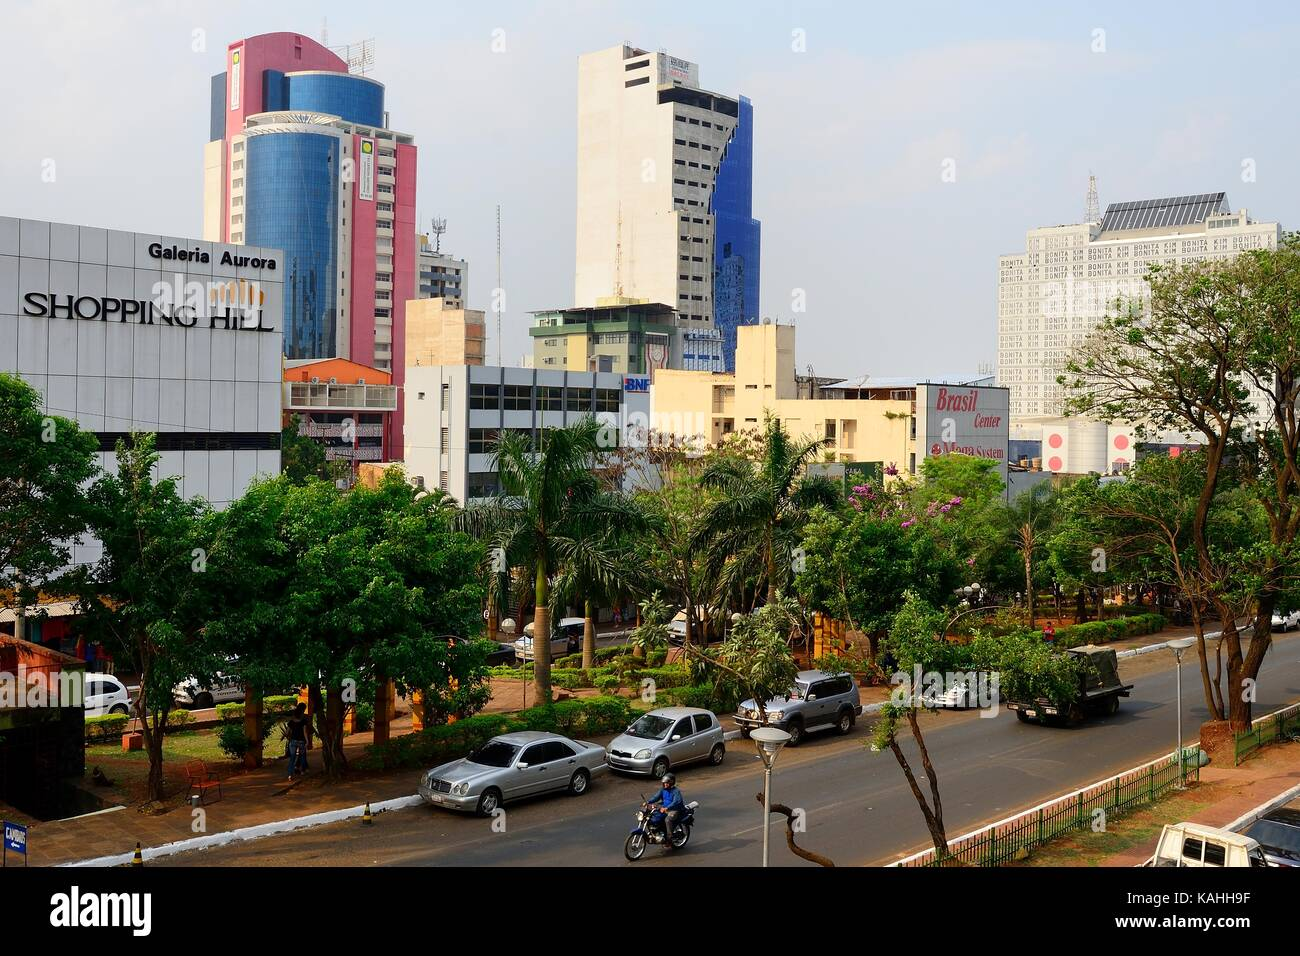 Main street in the city centre, Ciudad del Este, Alto Paraná, Paraguay - Stock Image